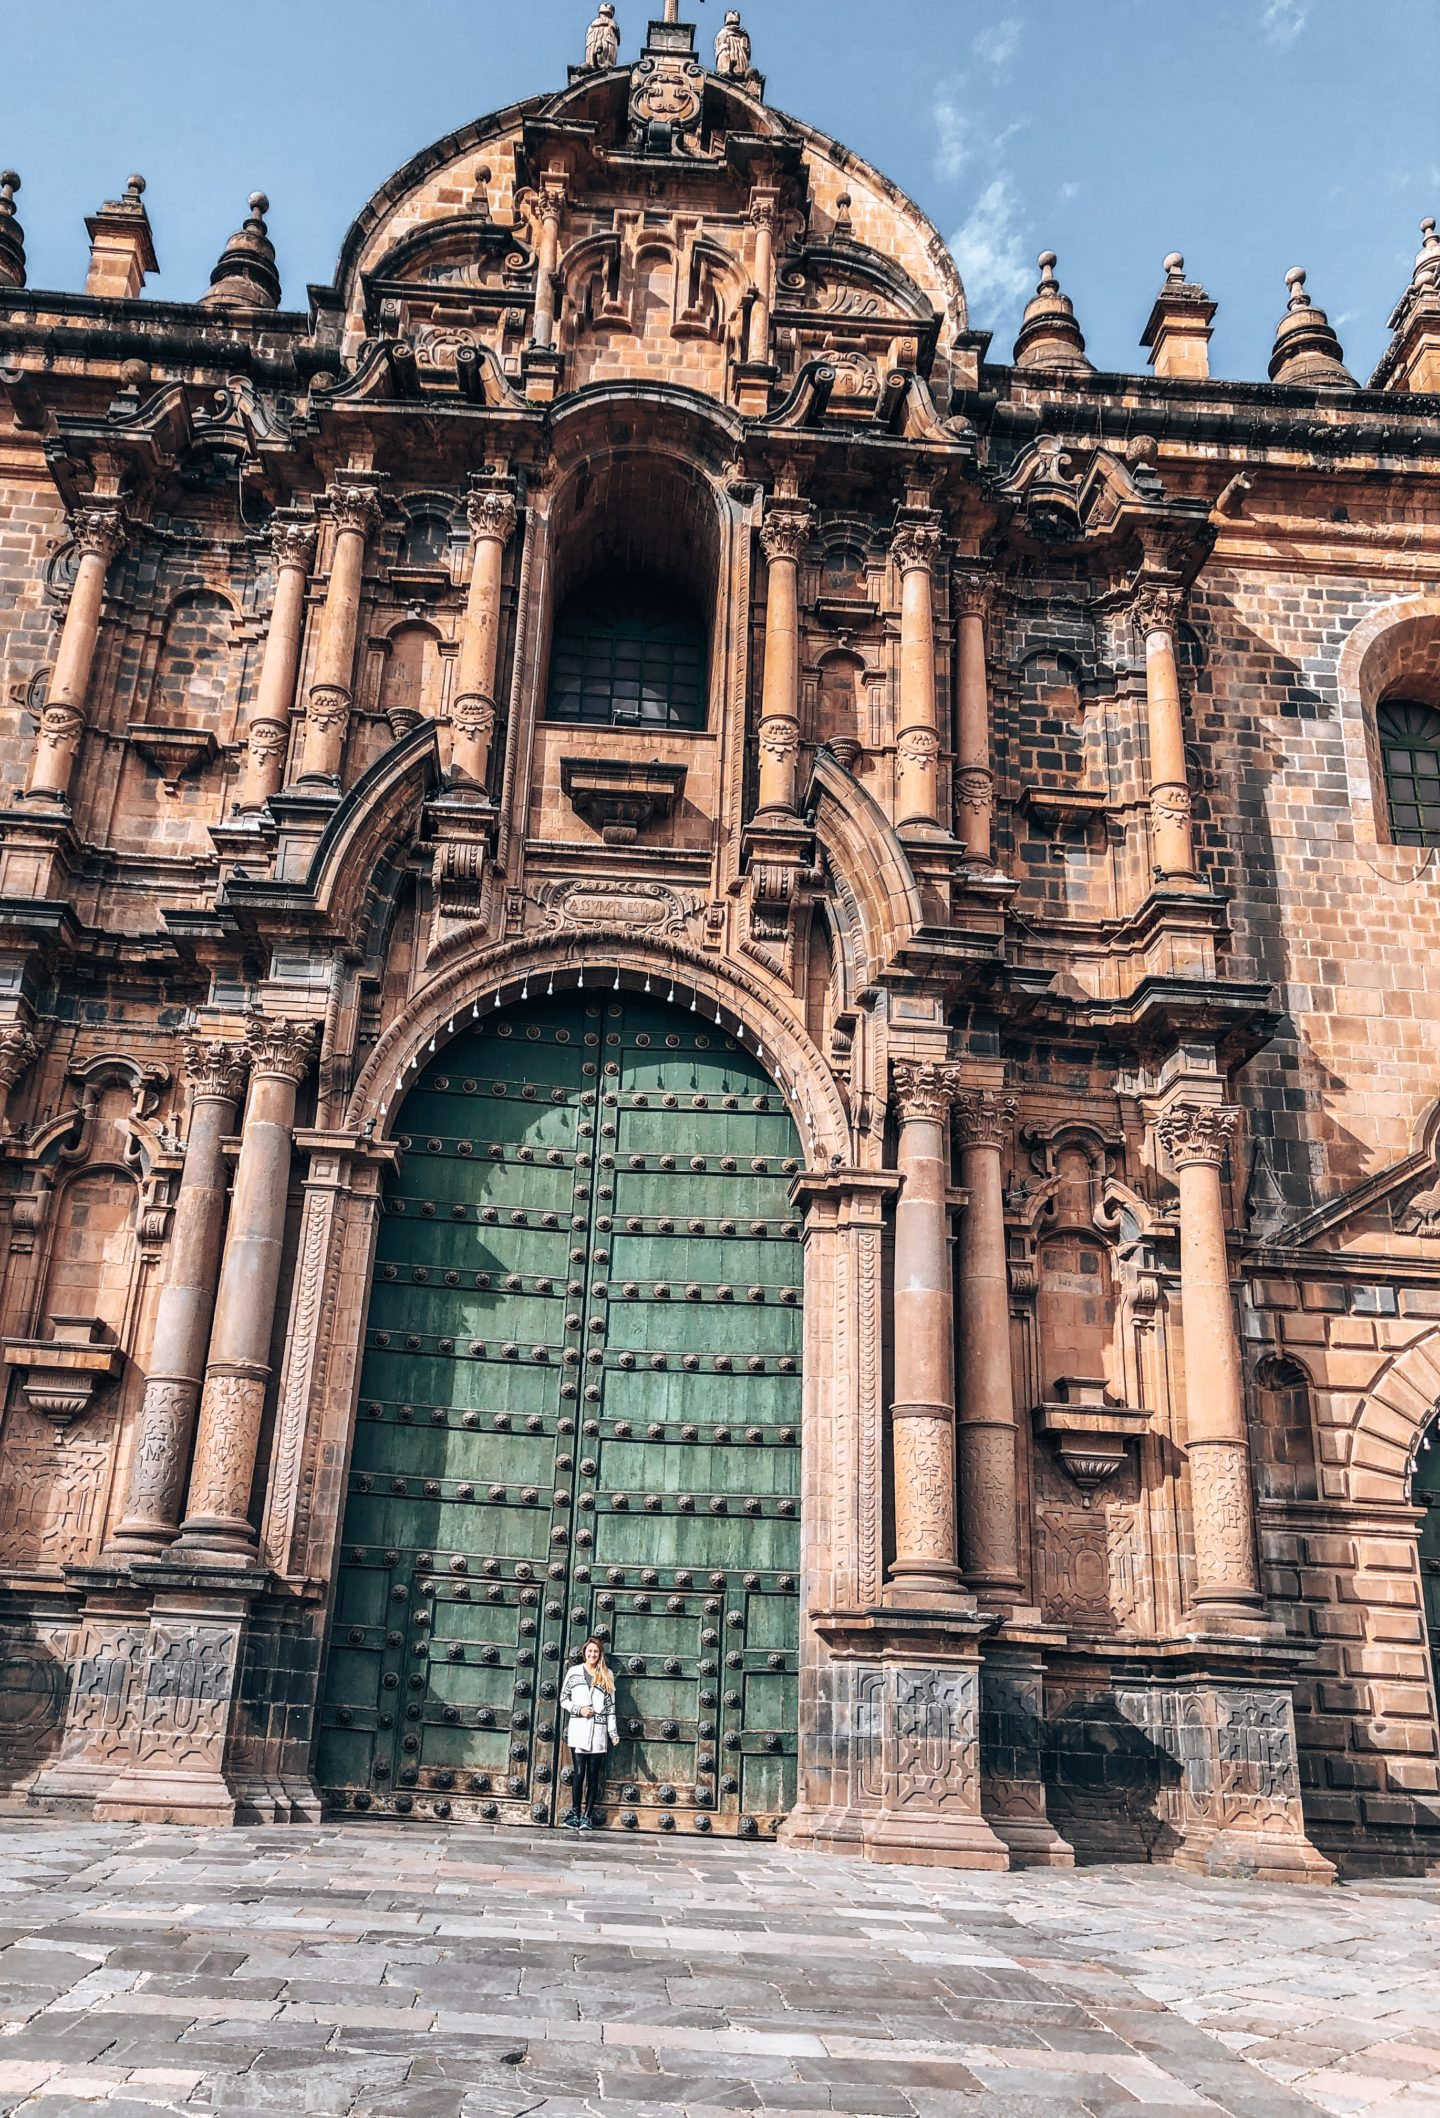 Exploring Cusco Peru and all of it's glorious architecture.